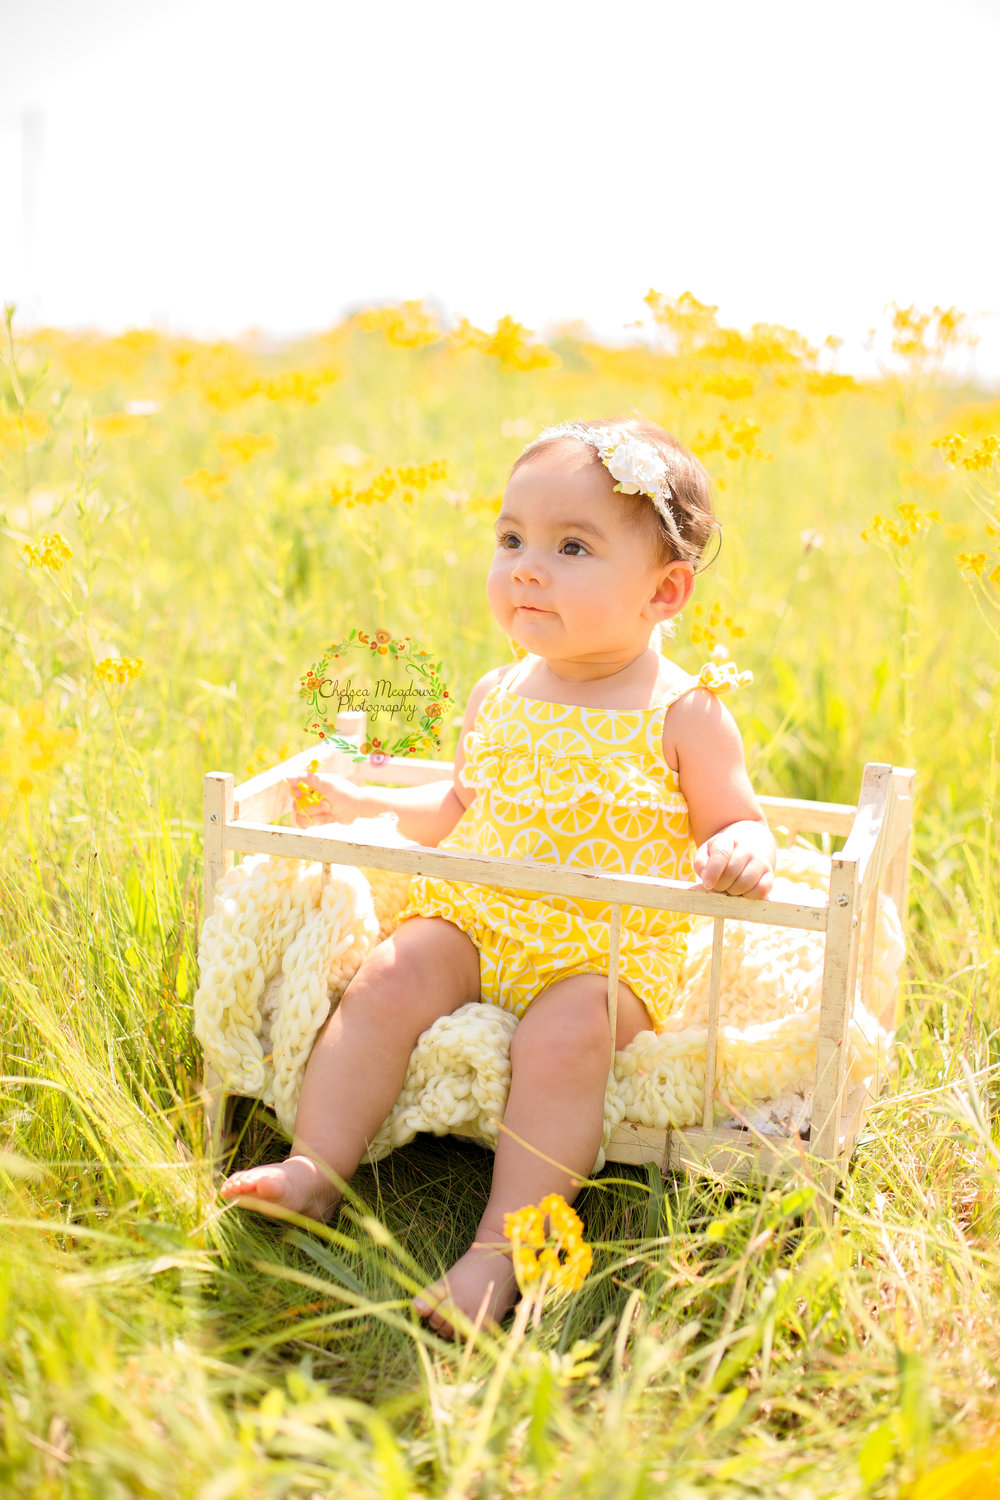 Camryn 6 Month Session - Nashville Family Photographer - Chelsea Meadows Photography (9)_edited-1.jpg